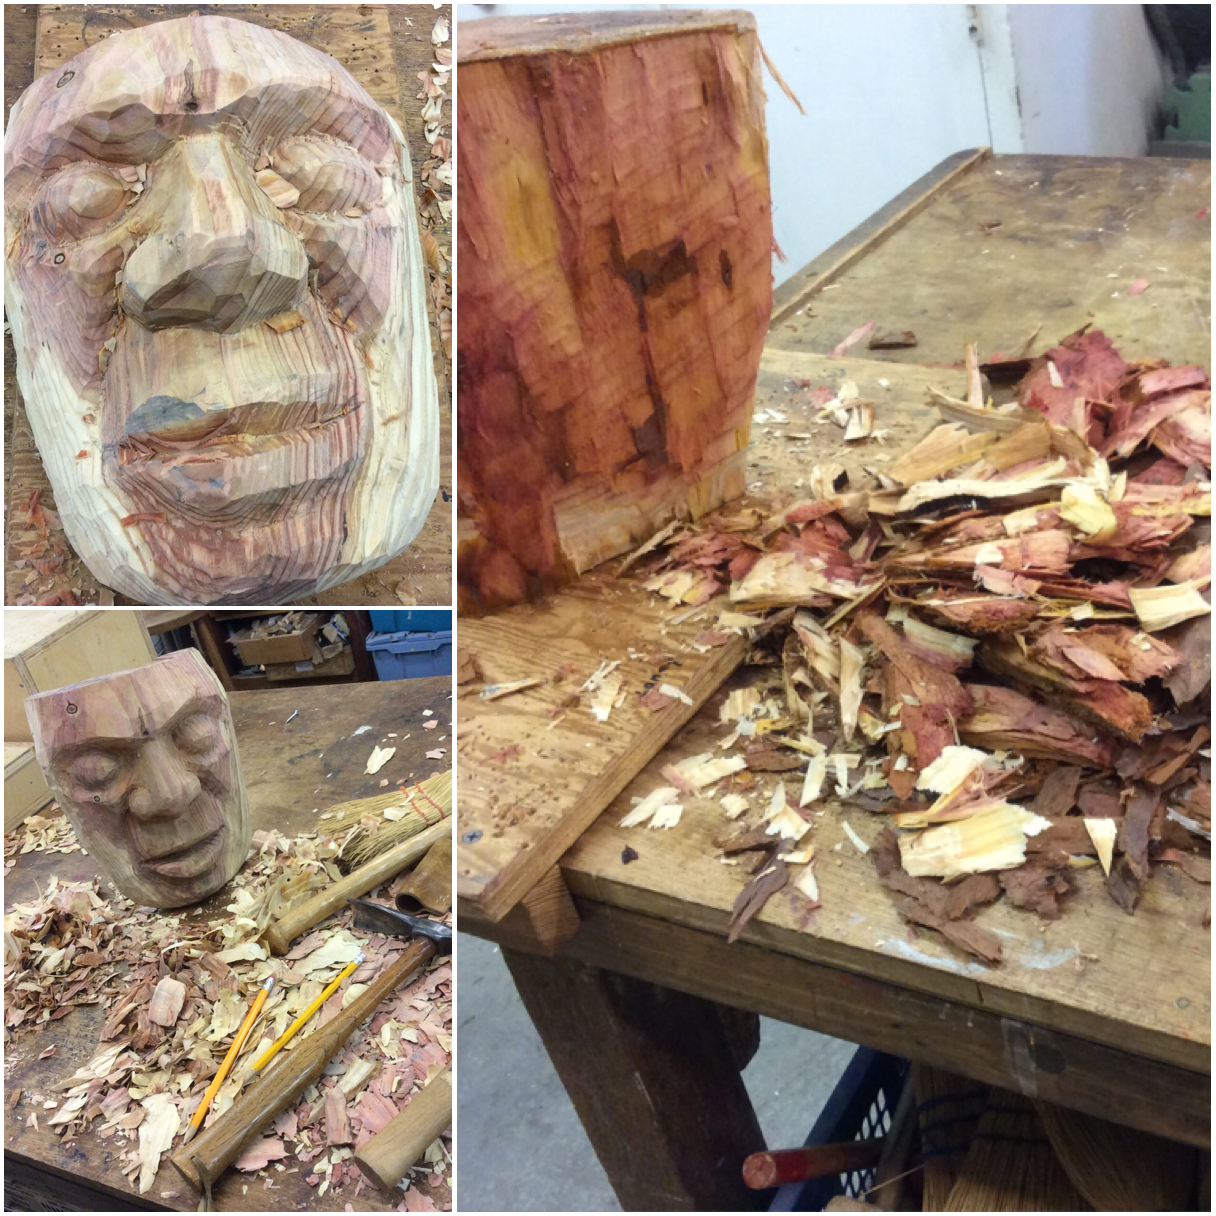 I  have been using some of my Balinese mask carving skills and trying out carving  some green wood for a mask.  I got this wood from my friend  Susan Koenig  from a large tree branch she had to remove.  It was quite wet and easy to rough out.